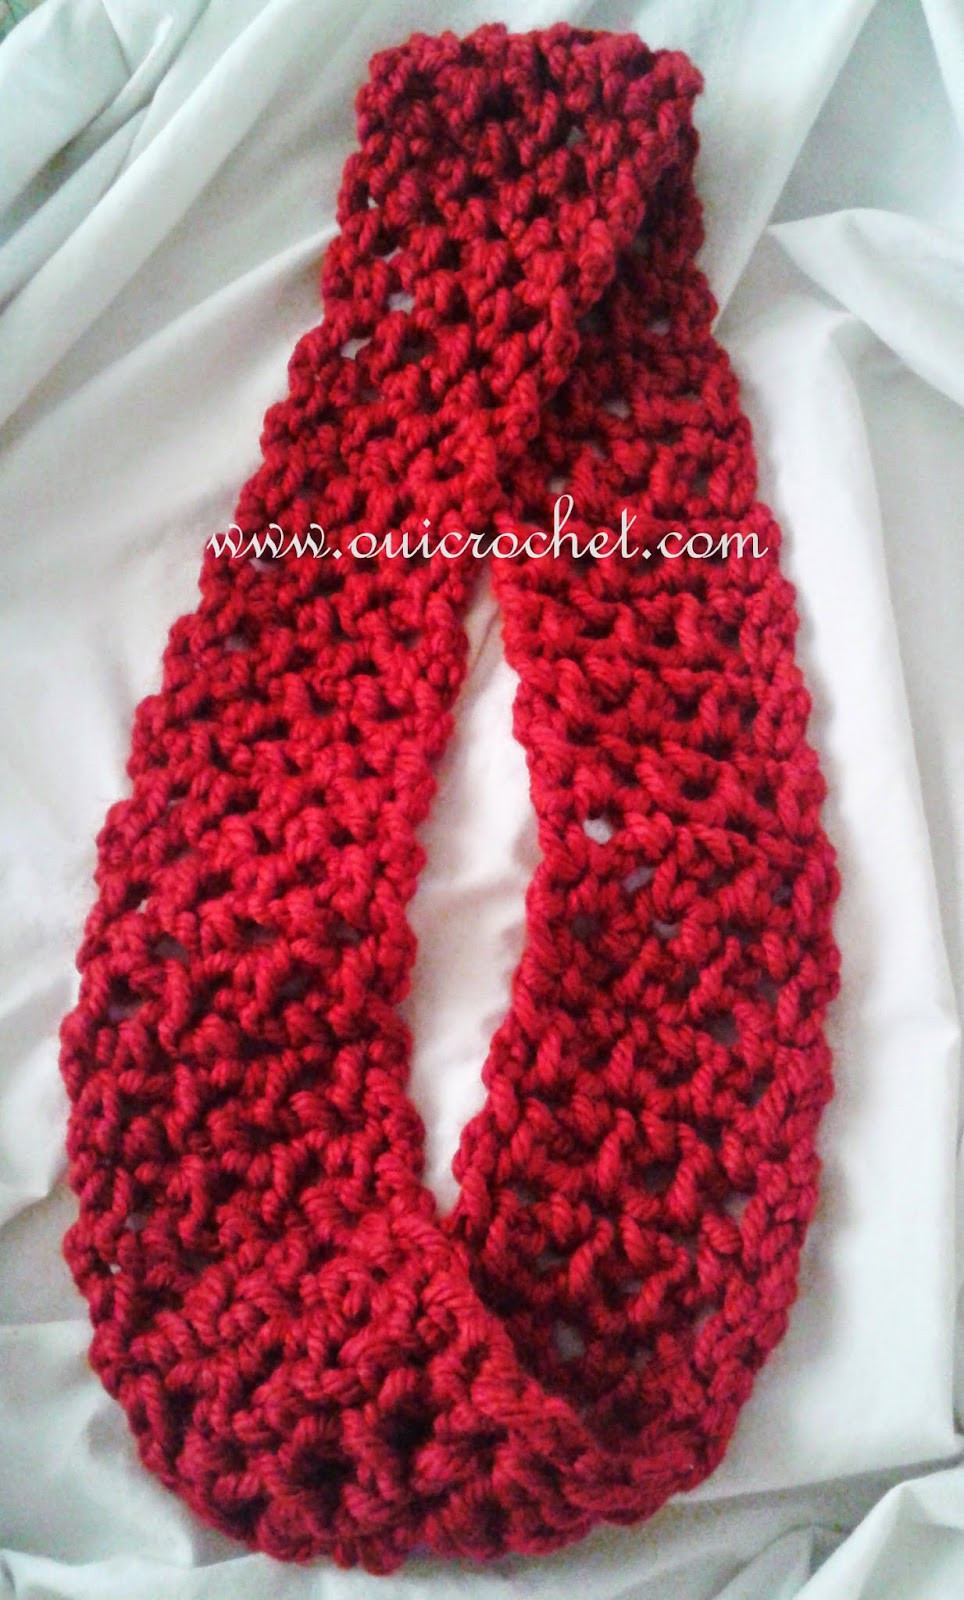 Inspirational Crochet Scarf Pattern Bulky Yarn Dancox for Free Crochet Patterns for Bulky Yarn Of Beautiful 46 Photos Free Crochet Patterns for Bulky Yarn